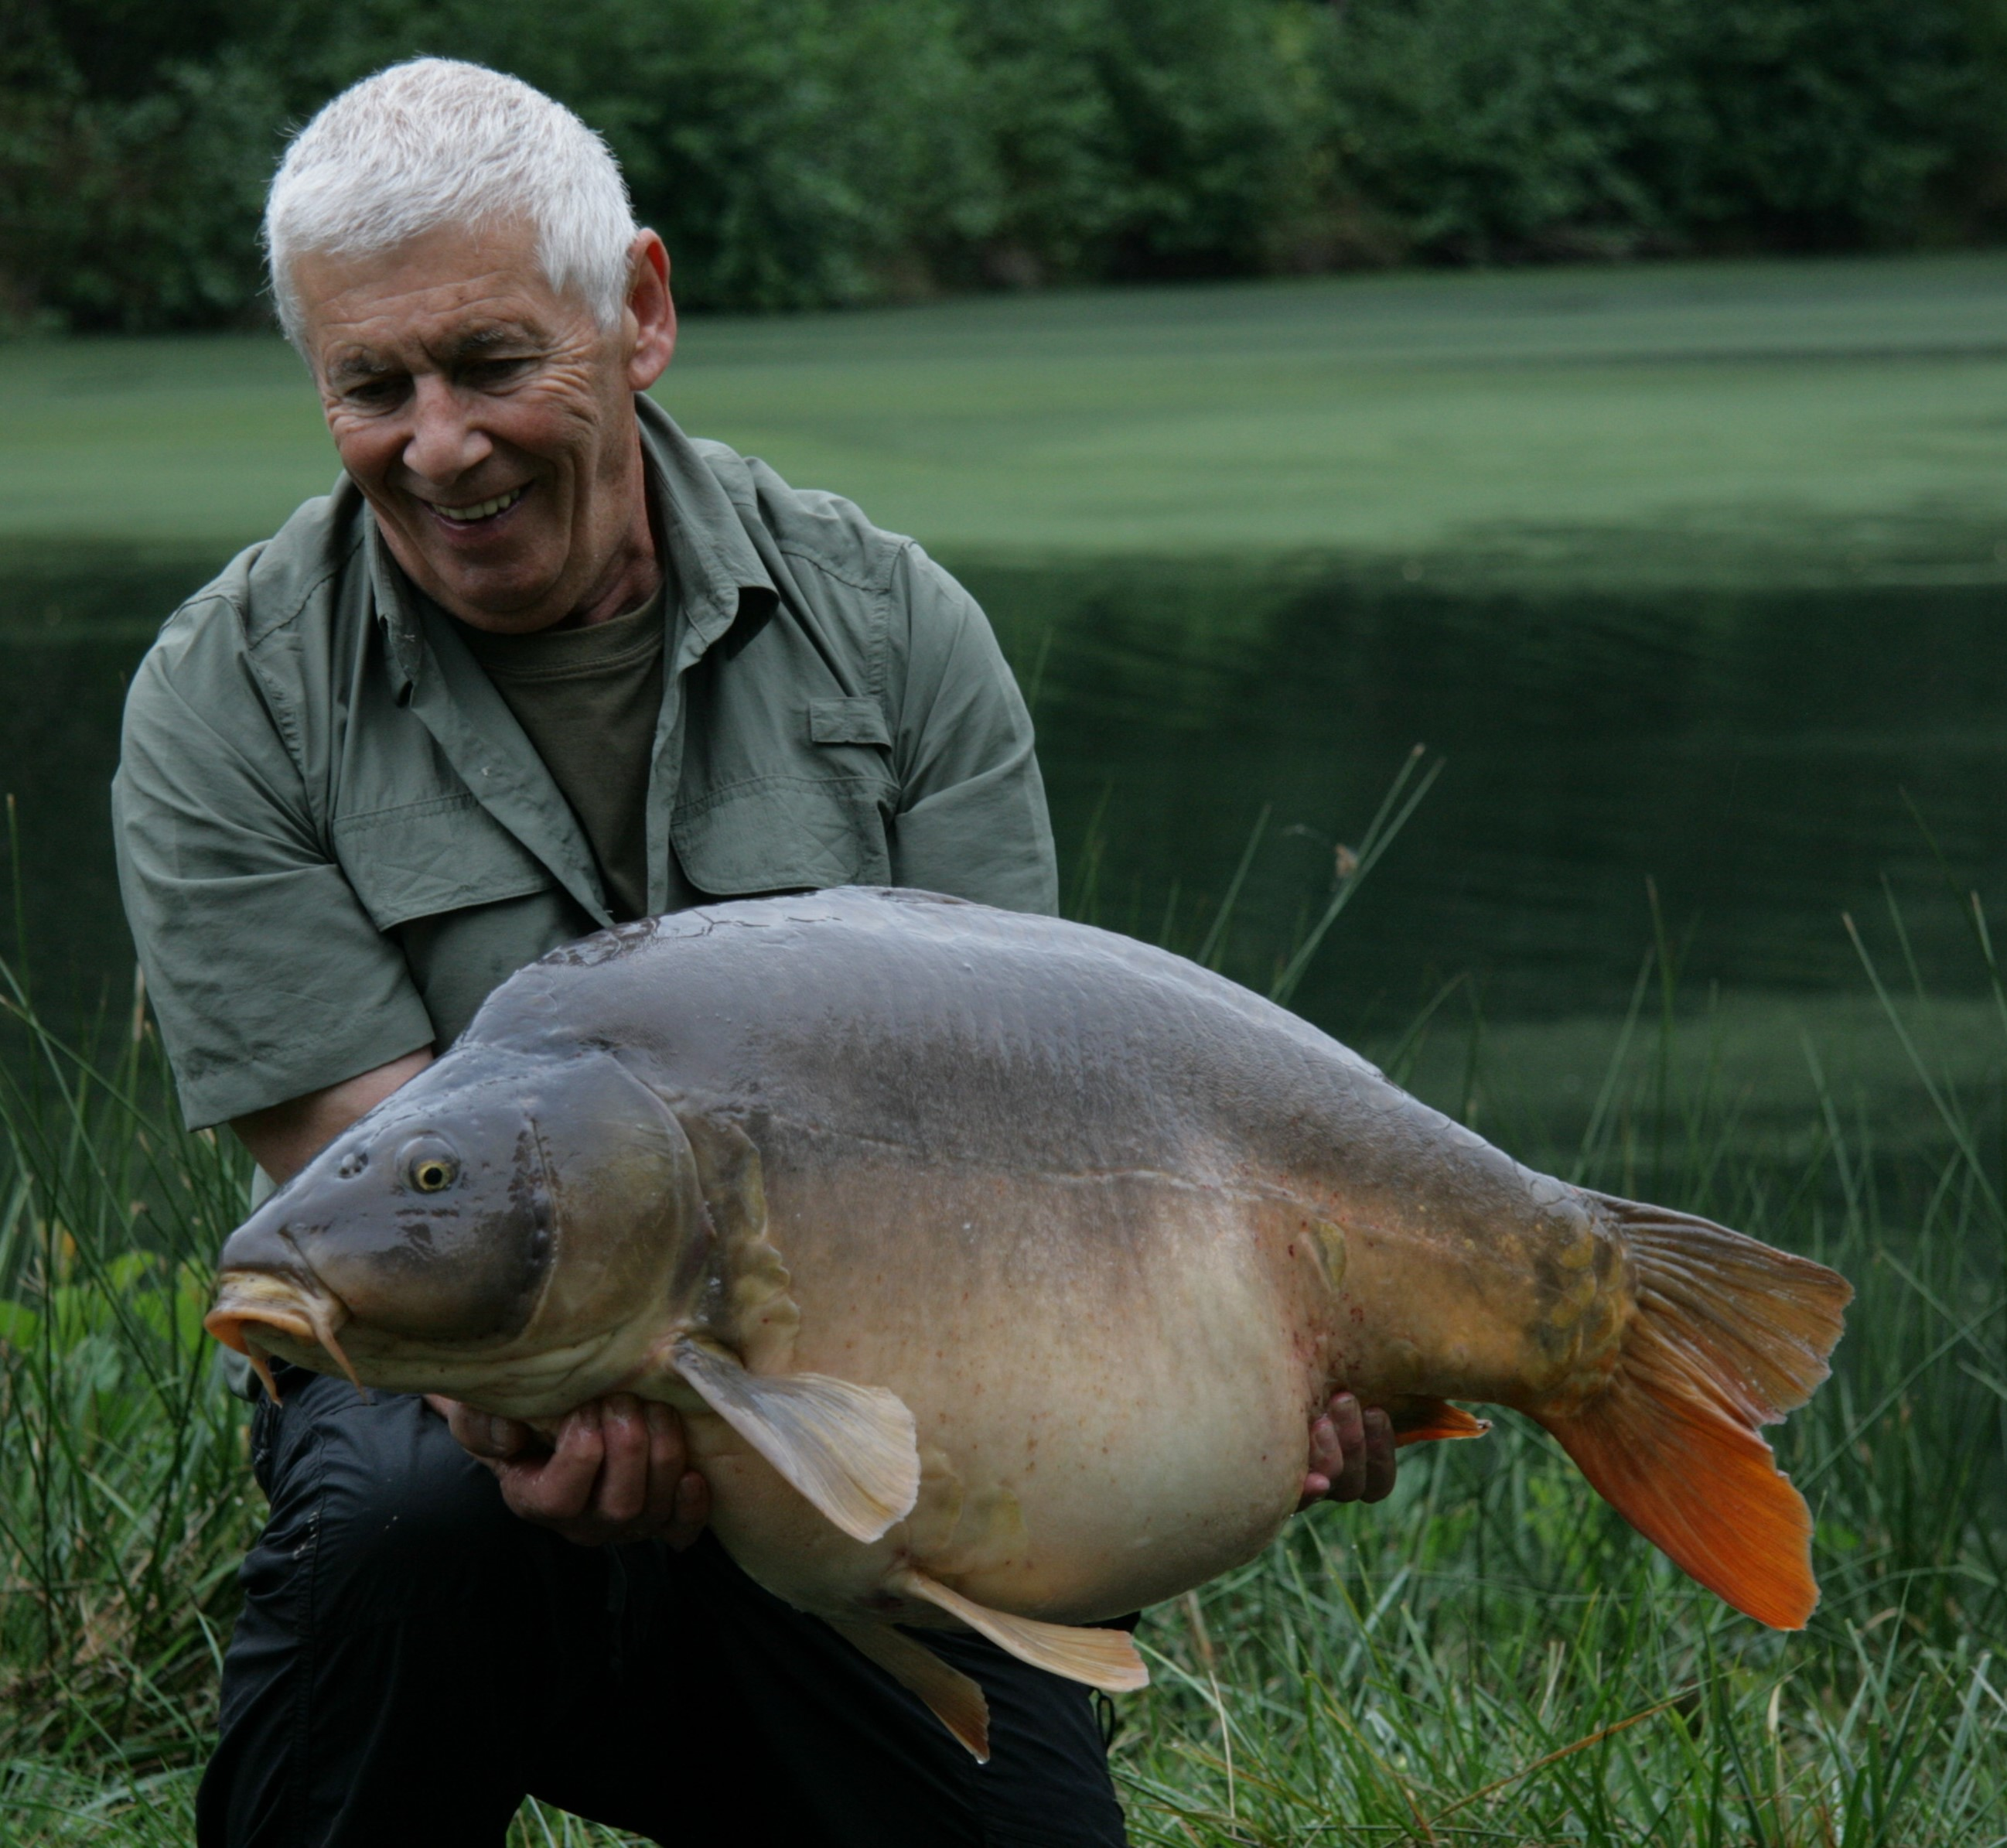 https://www.puyravaudcarp.com/wp-content/uploads/2016/10/40.124.jpg